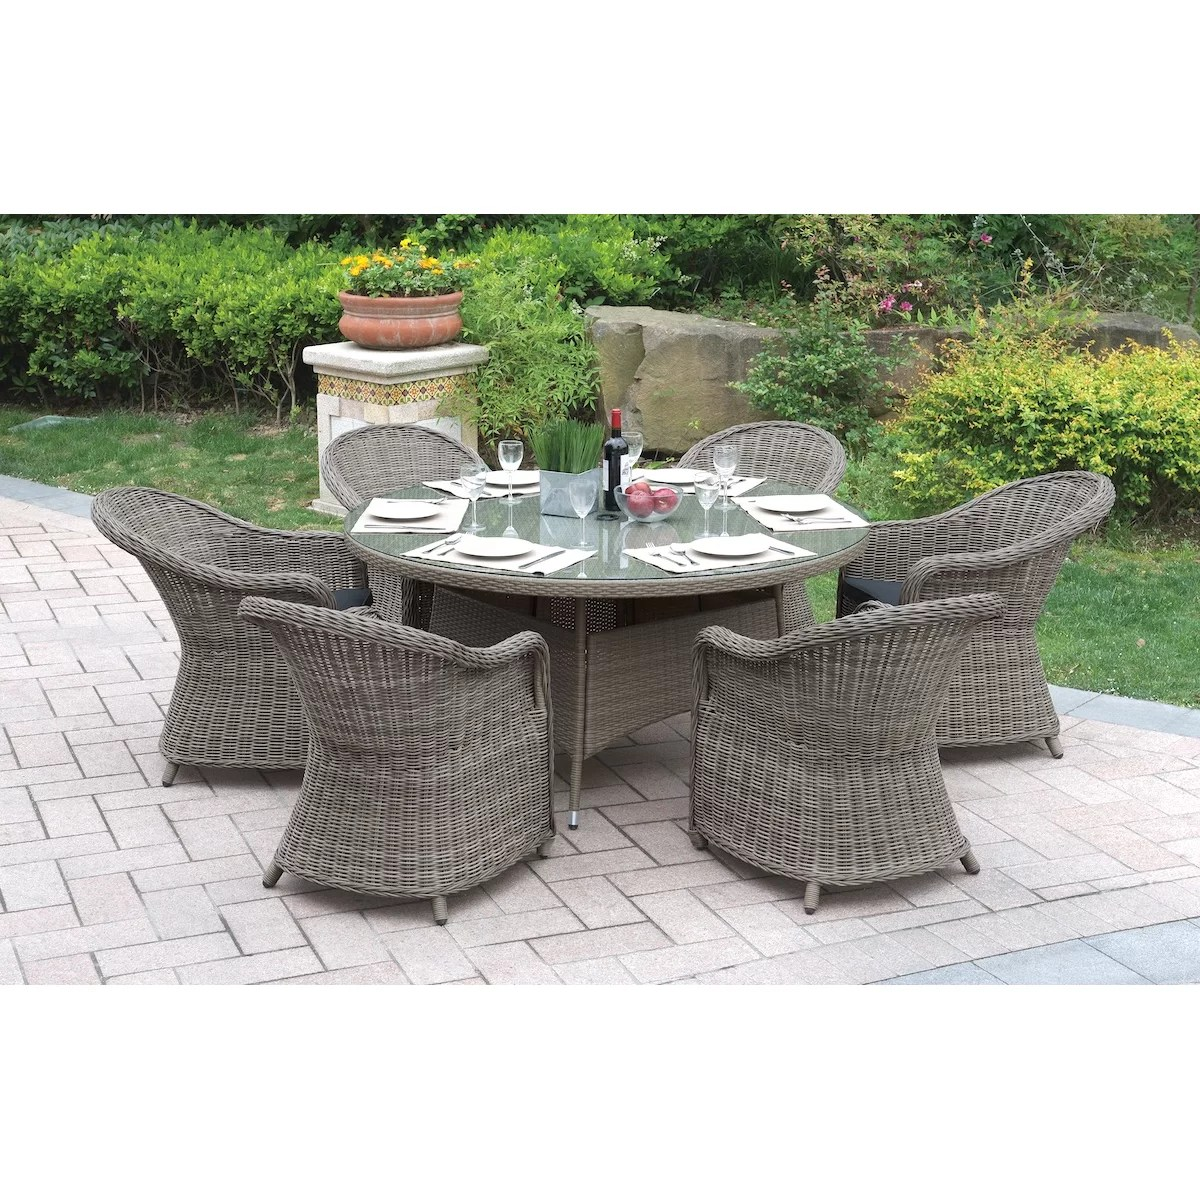 where to buy sofa in jb with wooden arms and legs uk patio 7 piece dining set cushions reviews wayfair